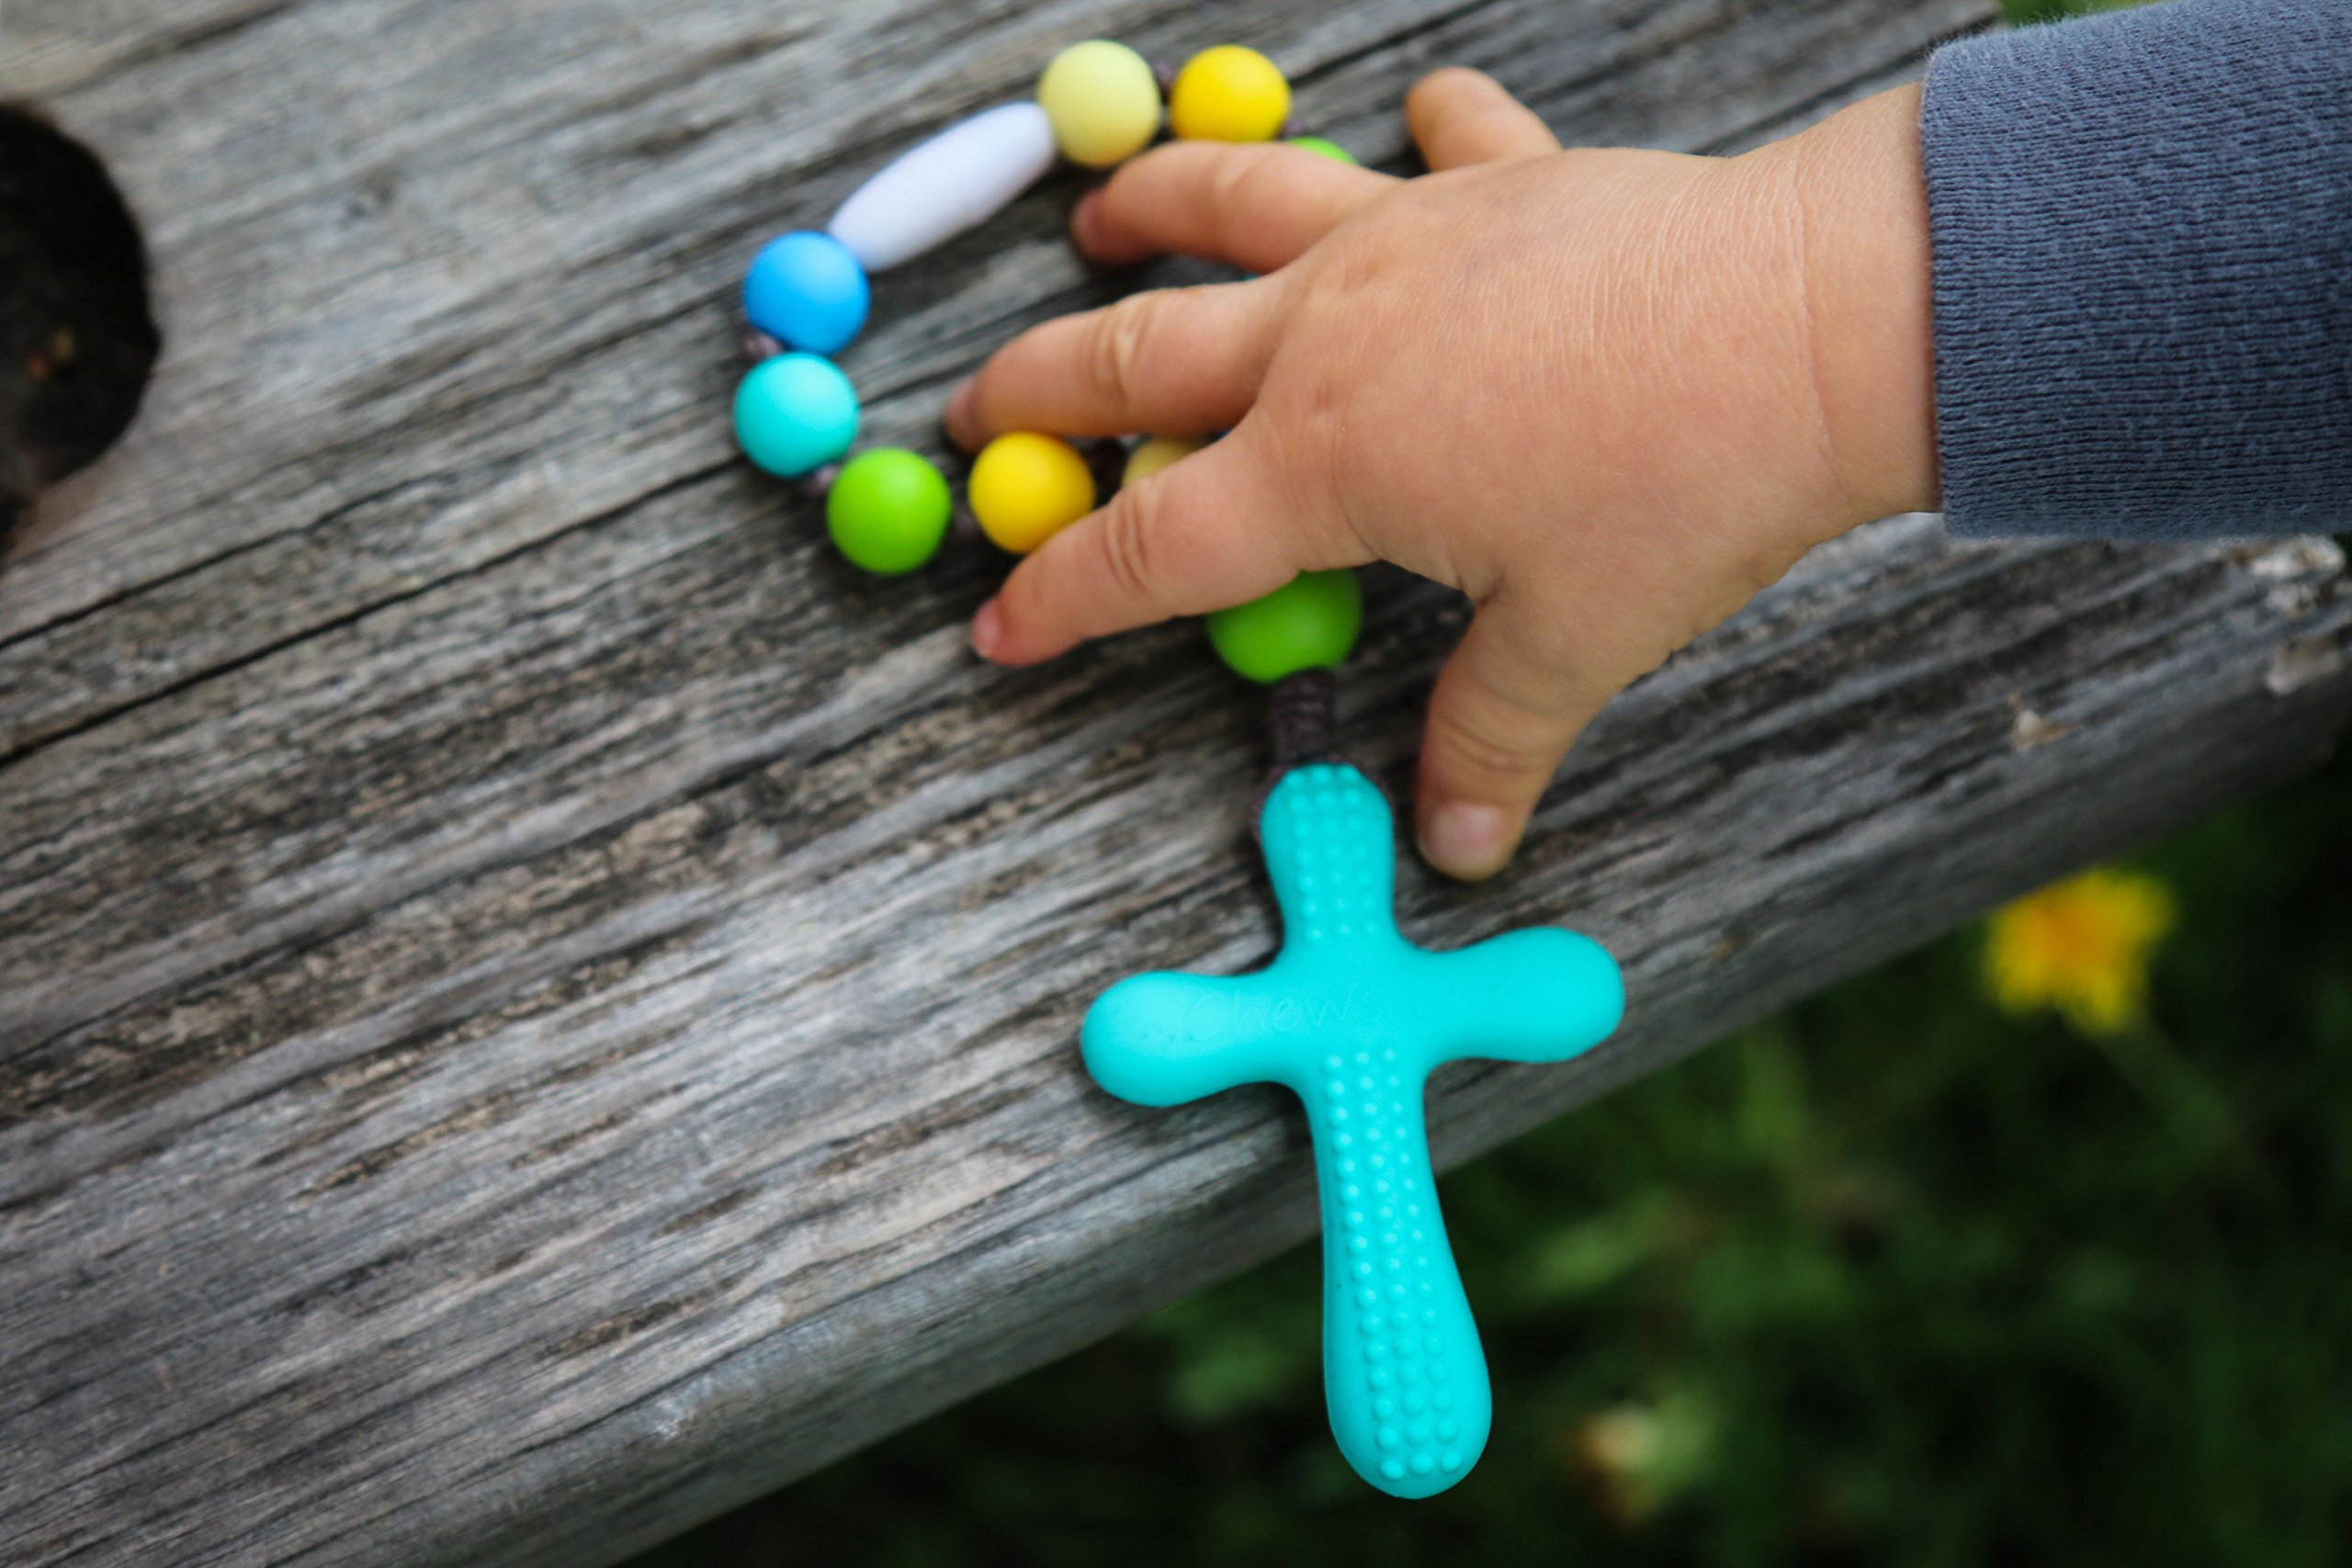 Chews Life Decade Rosary | Little One Decade RosarySilicone Teething Rosary | Boys' or Girls' Baptism or Mass Toy by Chews Life (Image #2)